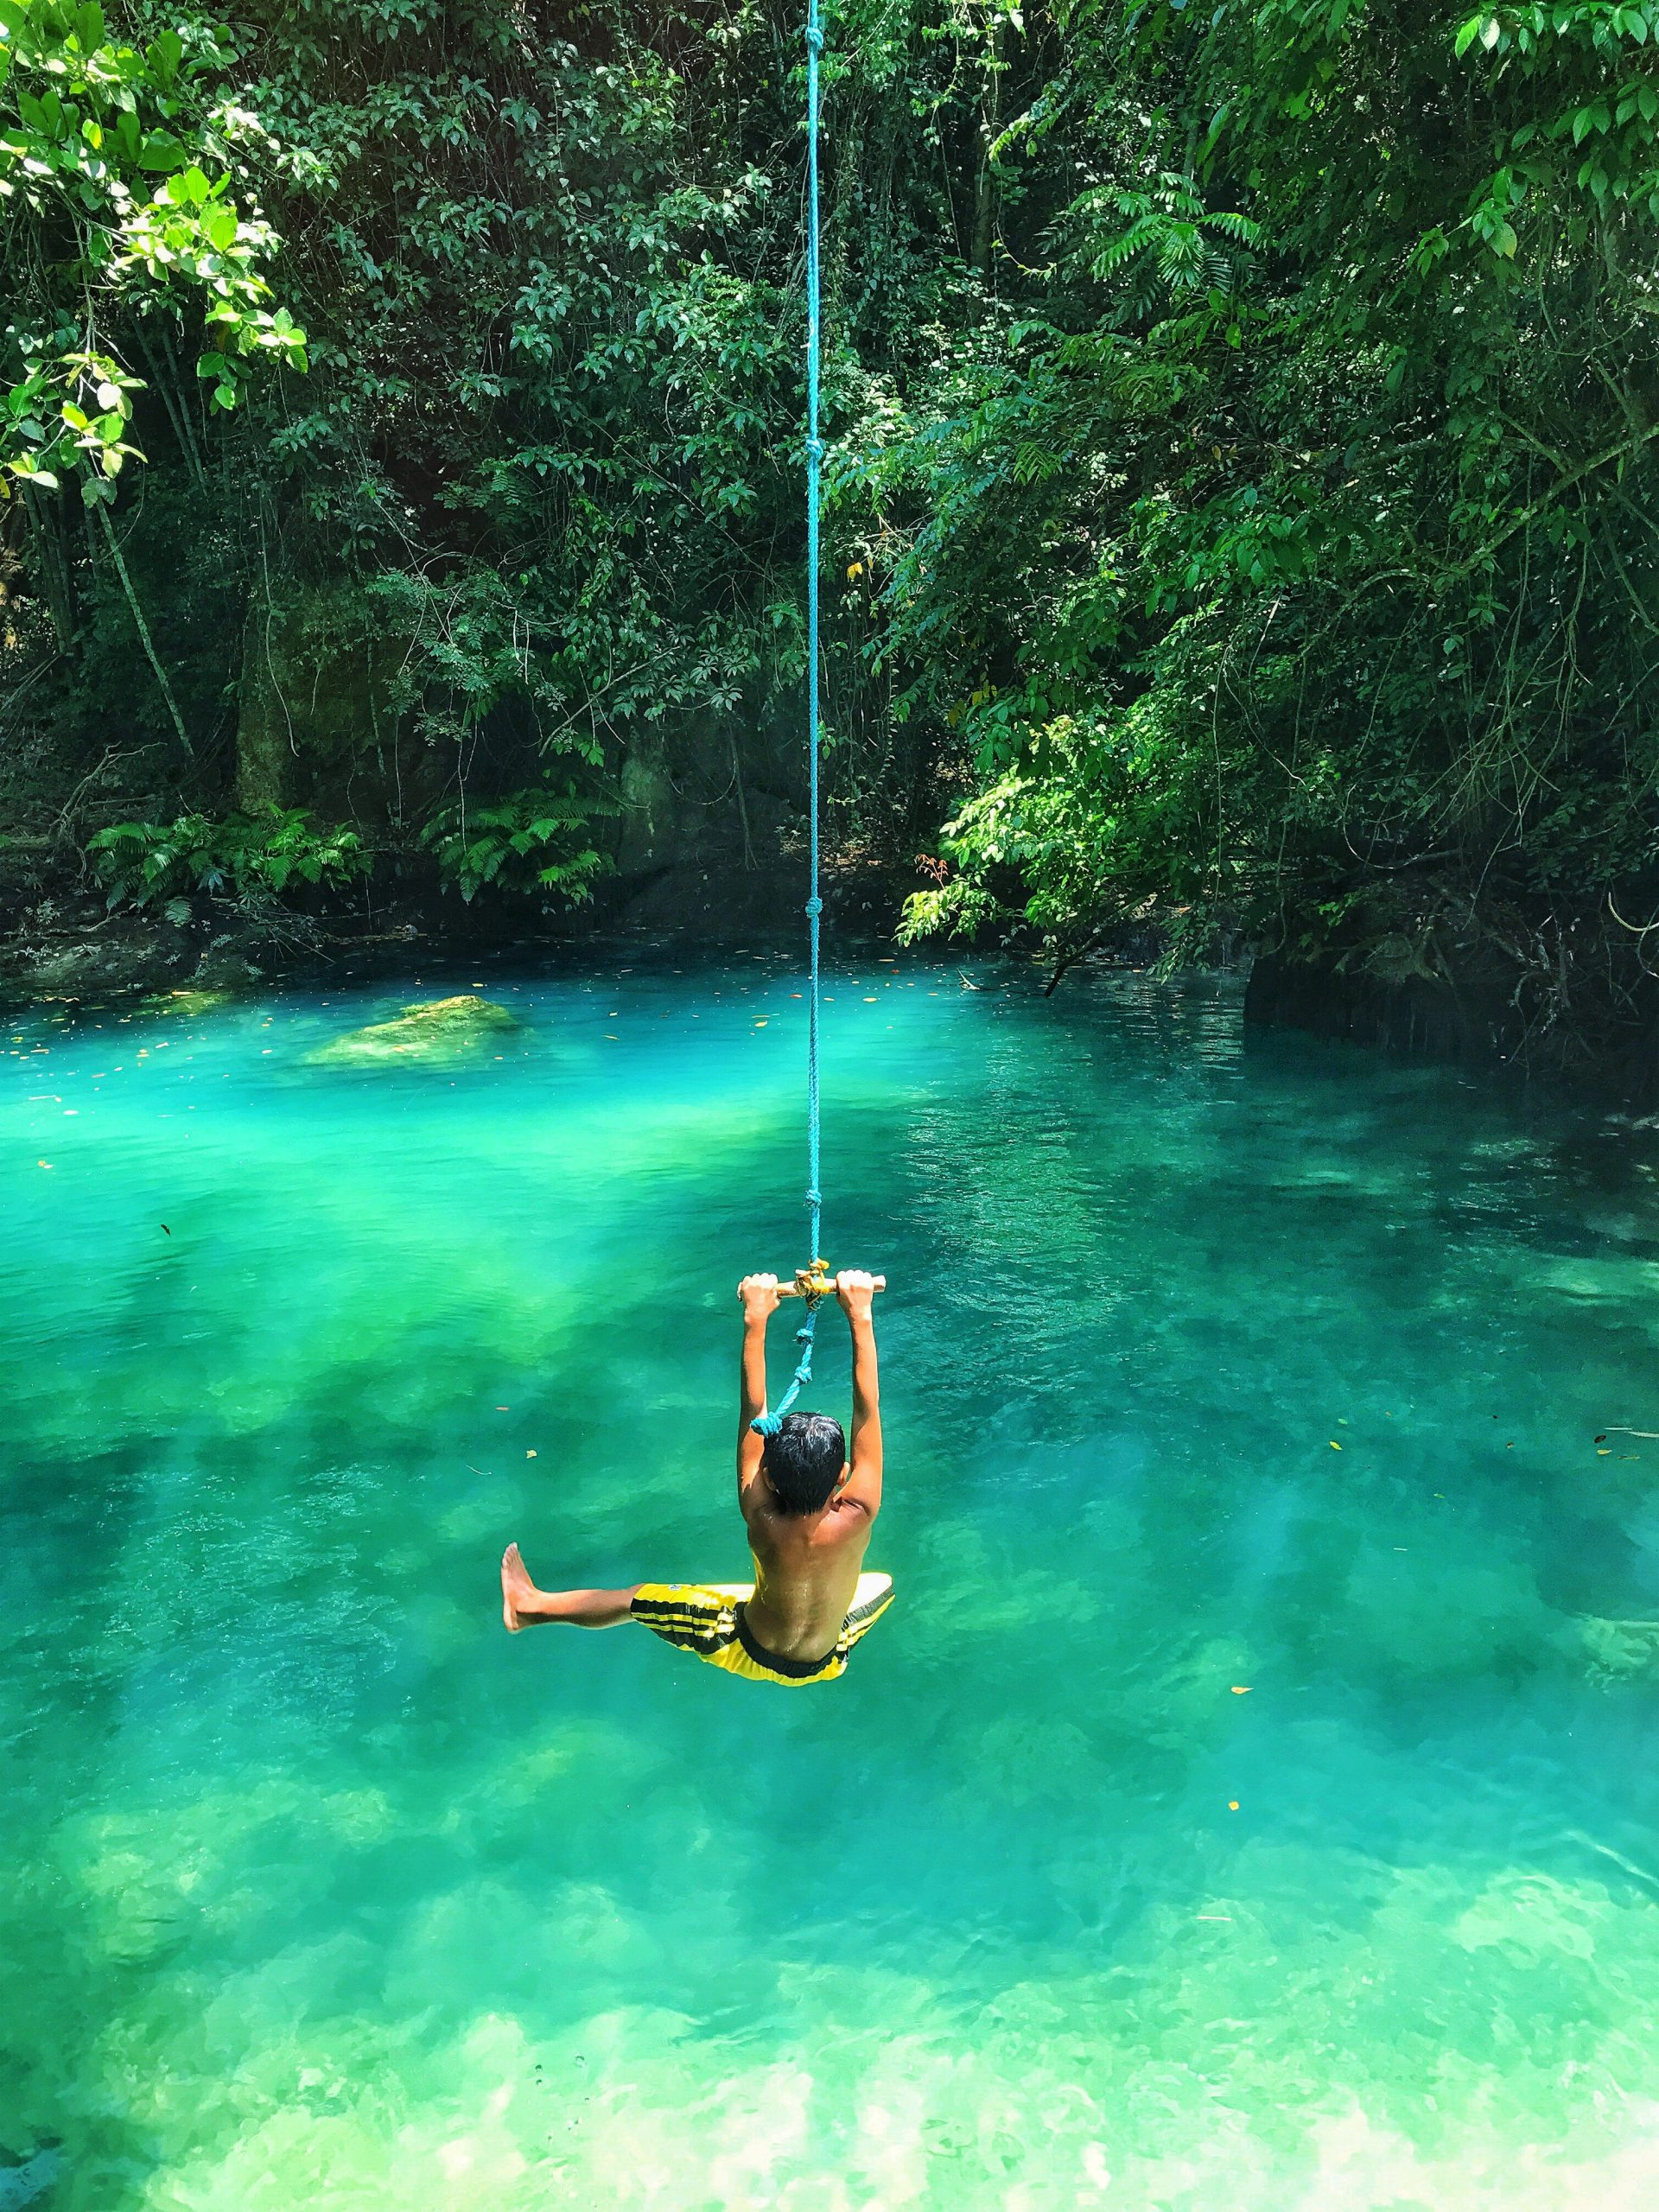 photo-of-boy-swinging-over-body-of-water-2413238-scaled